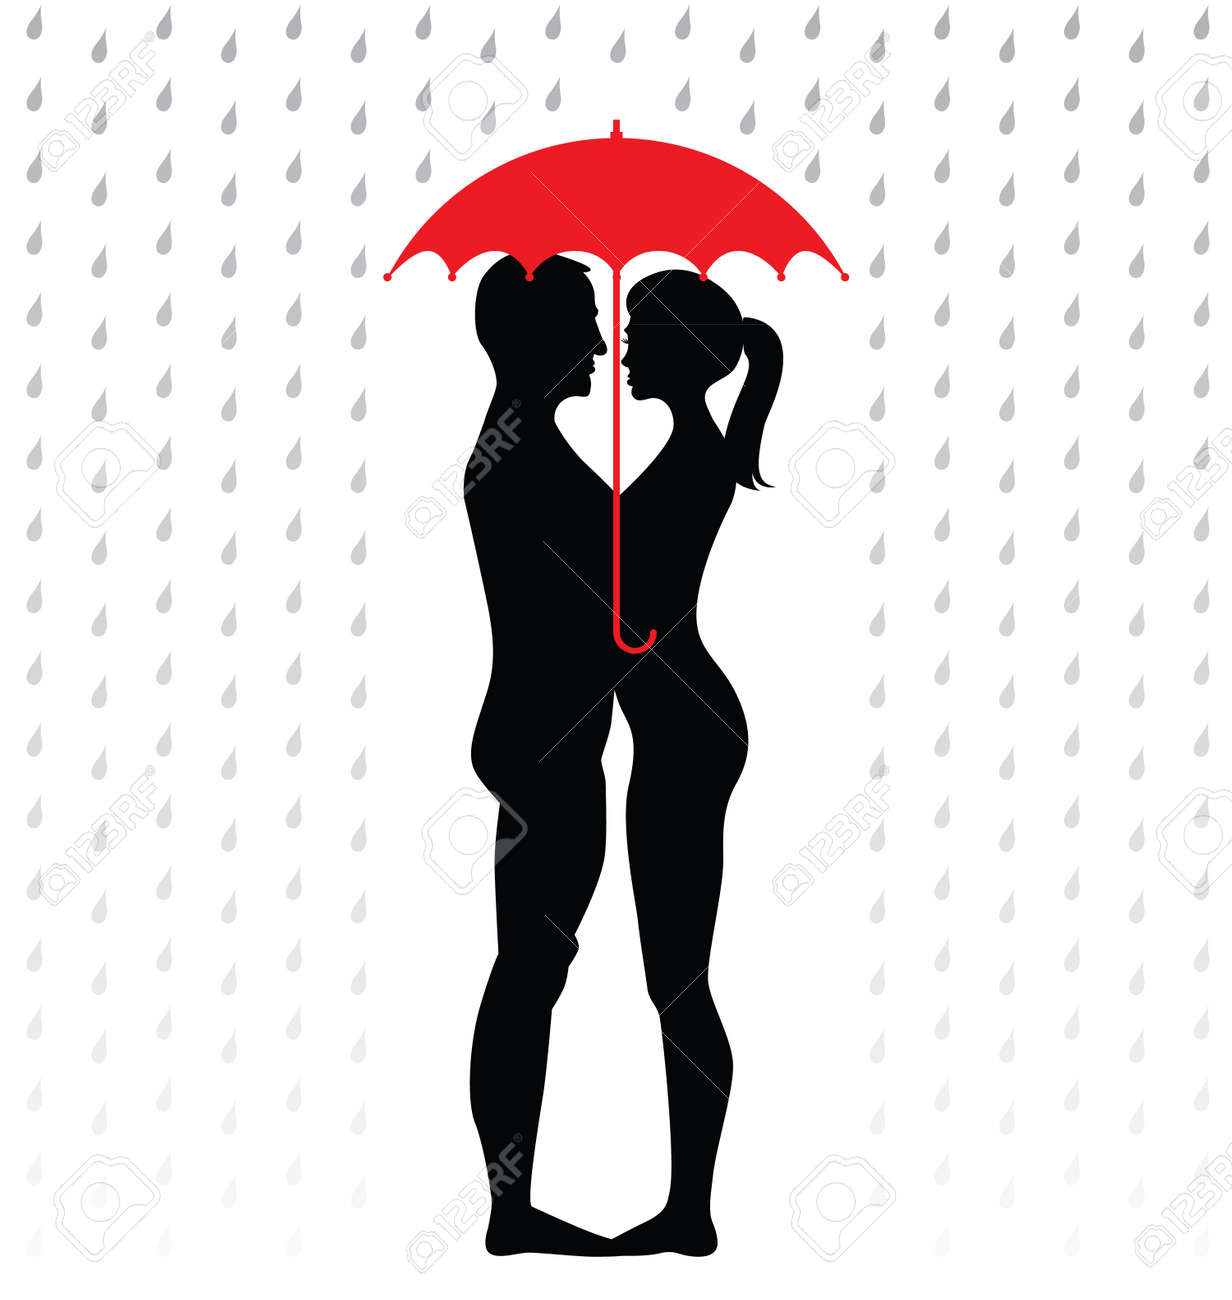 11 941 umbrella silhouette cliparts stock vector and royalty free